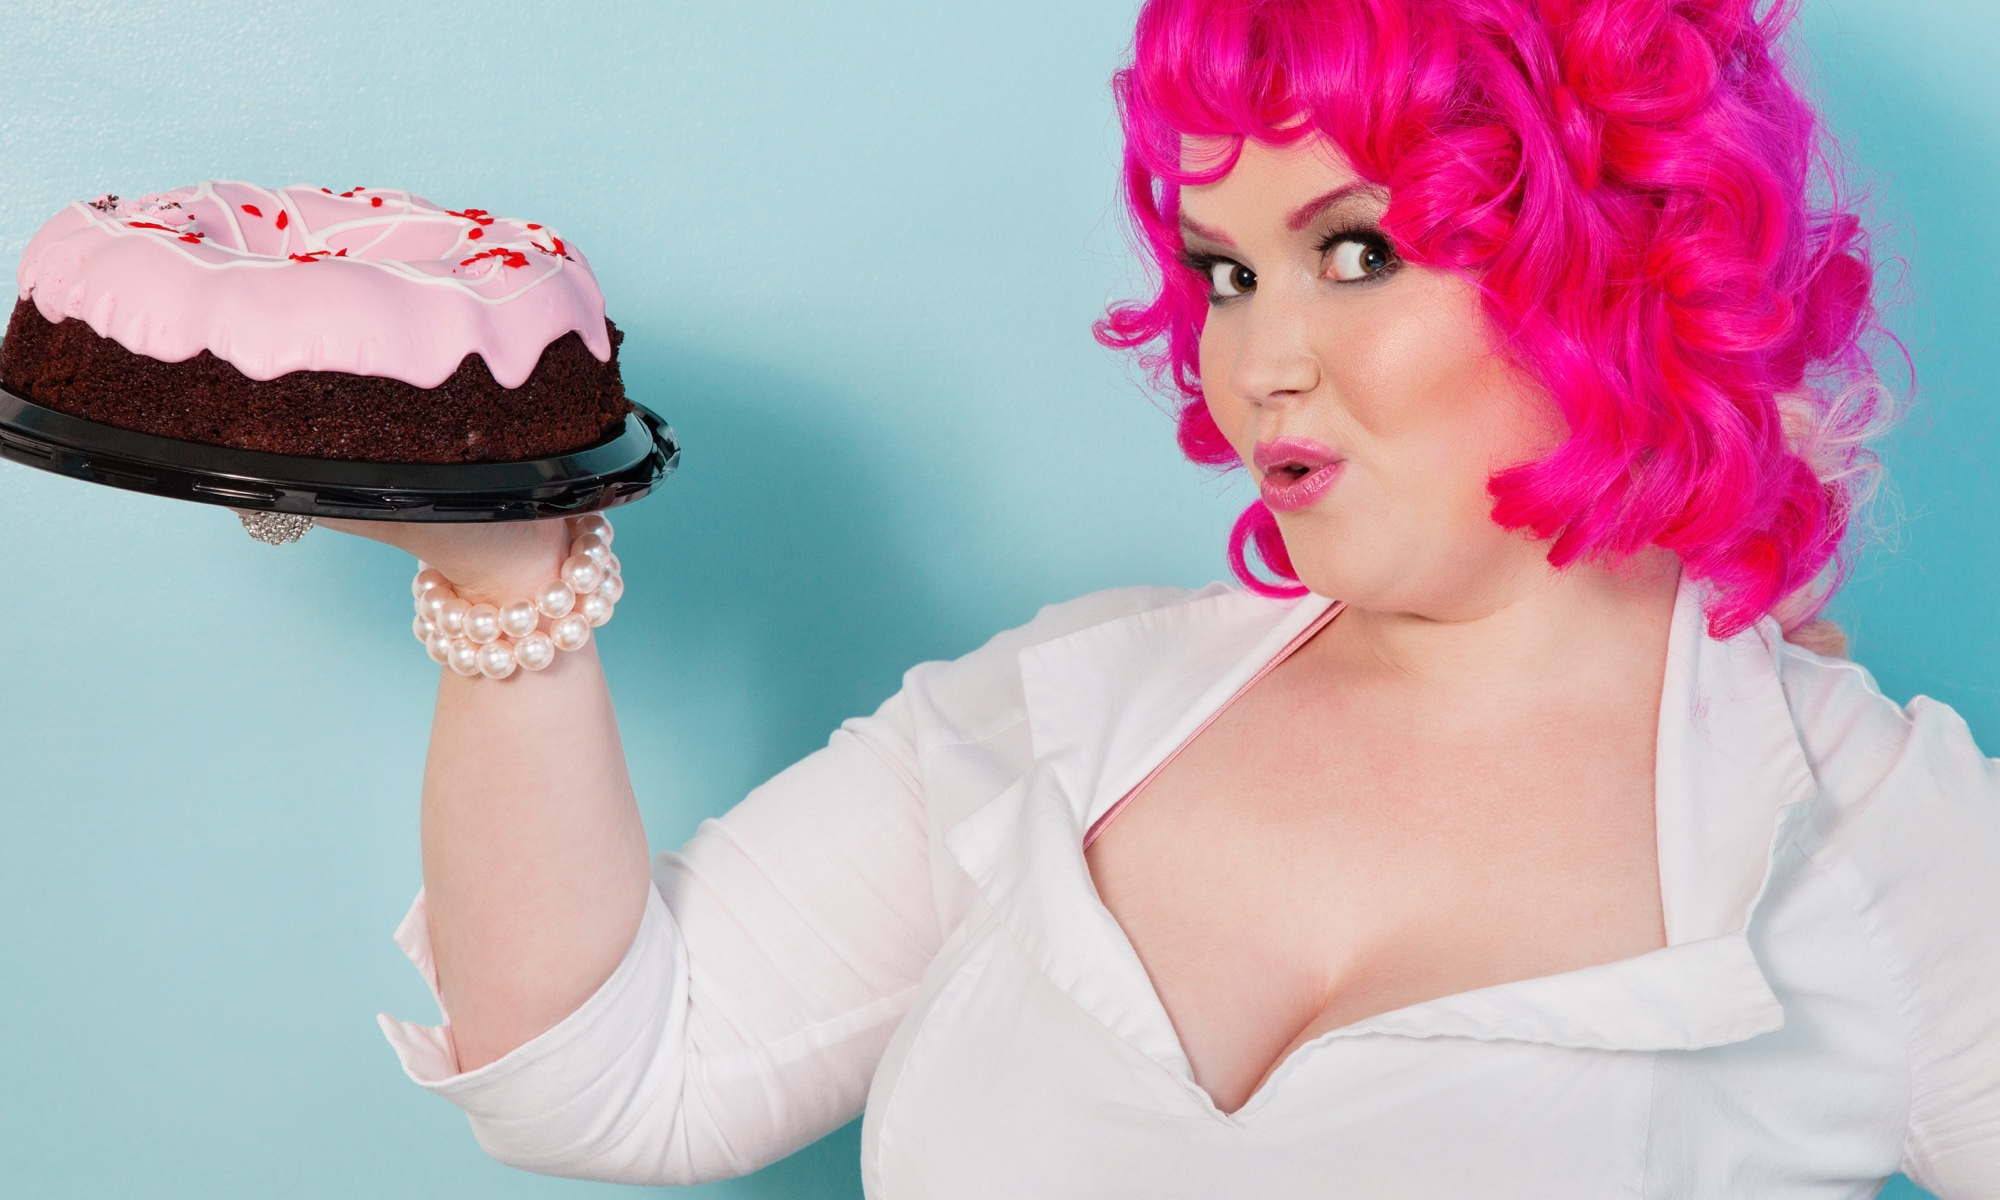 A cheeky pretty woman with hot pink hair holding a pink-frosted chocolate cake.